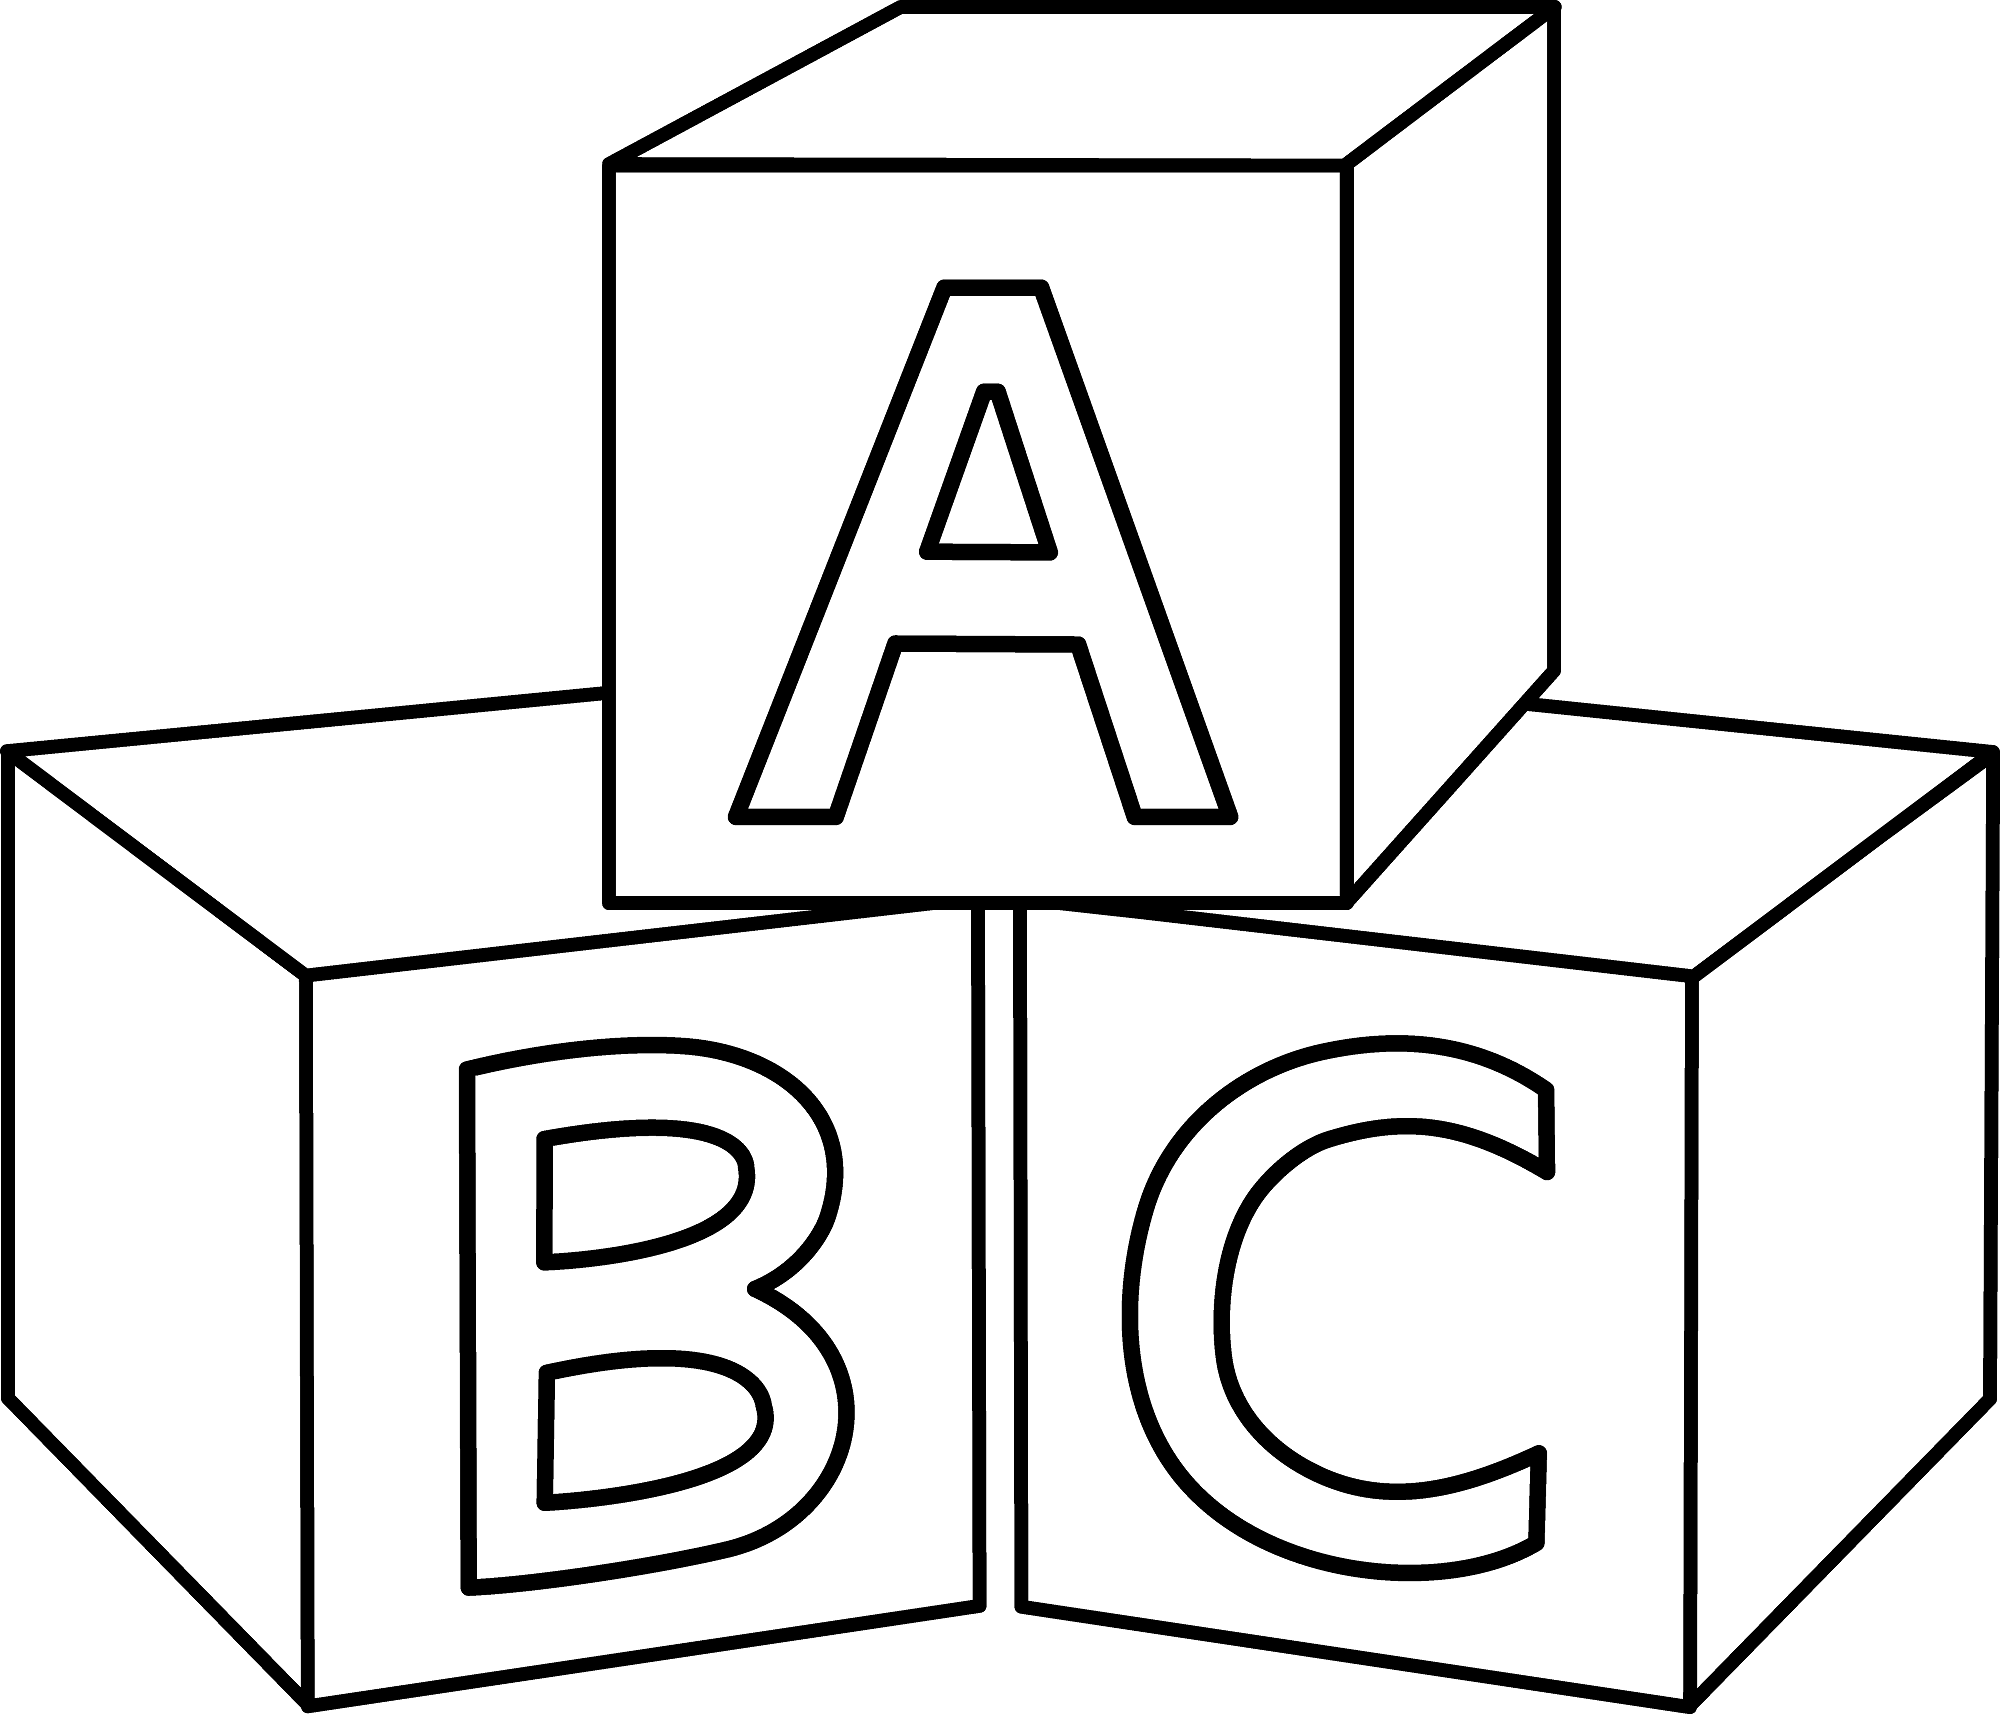 Free ABC Worksheets to Print.